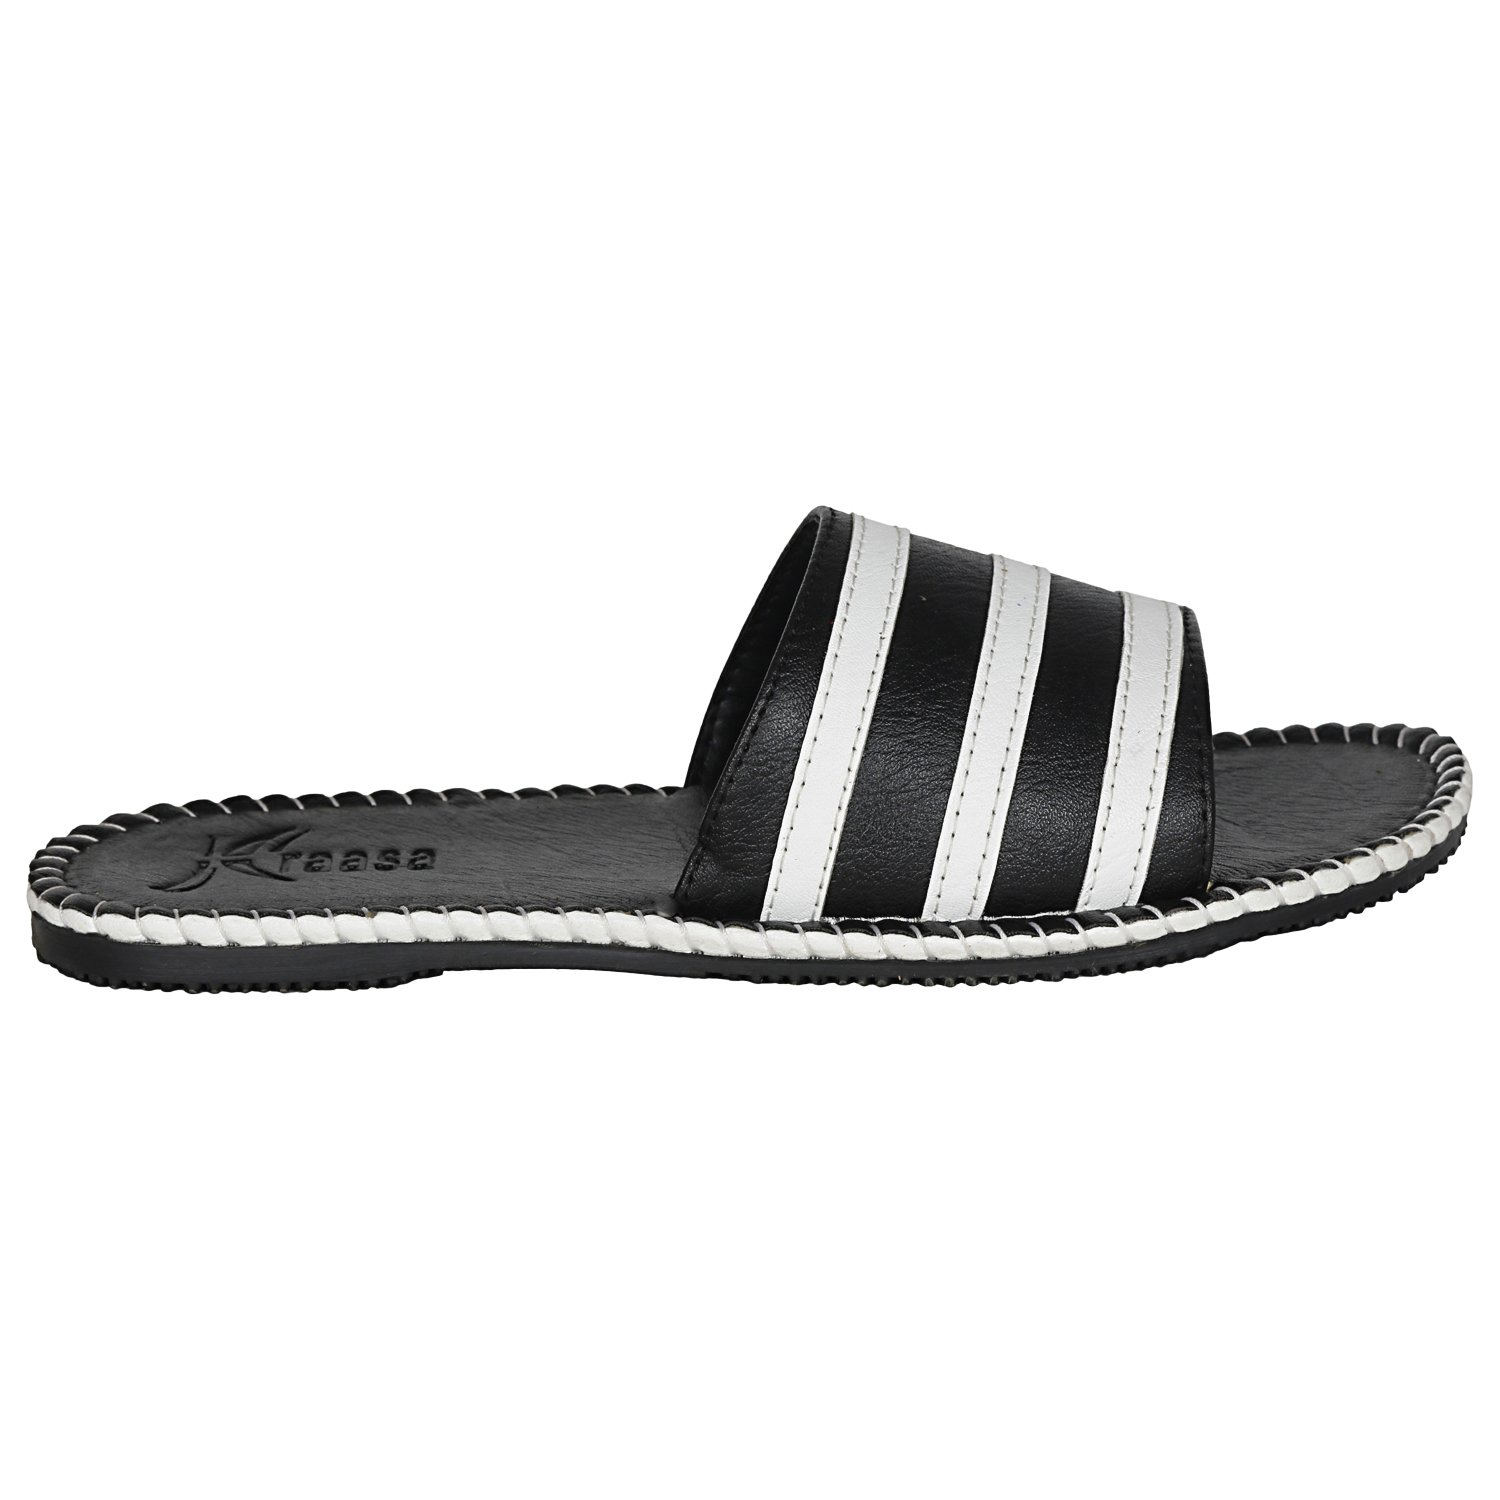 28ced5149f7c0d Kraasa Men s Synthetic Slippers  Buy Online at Low Prices in India -  Amazon.in